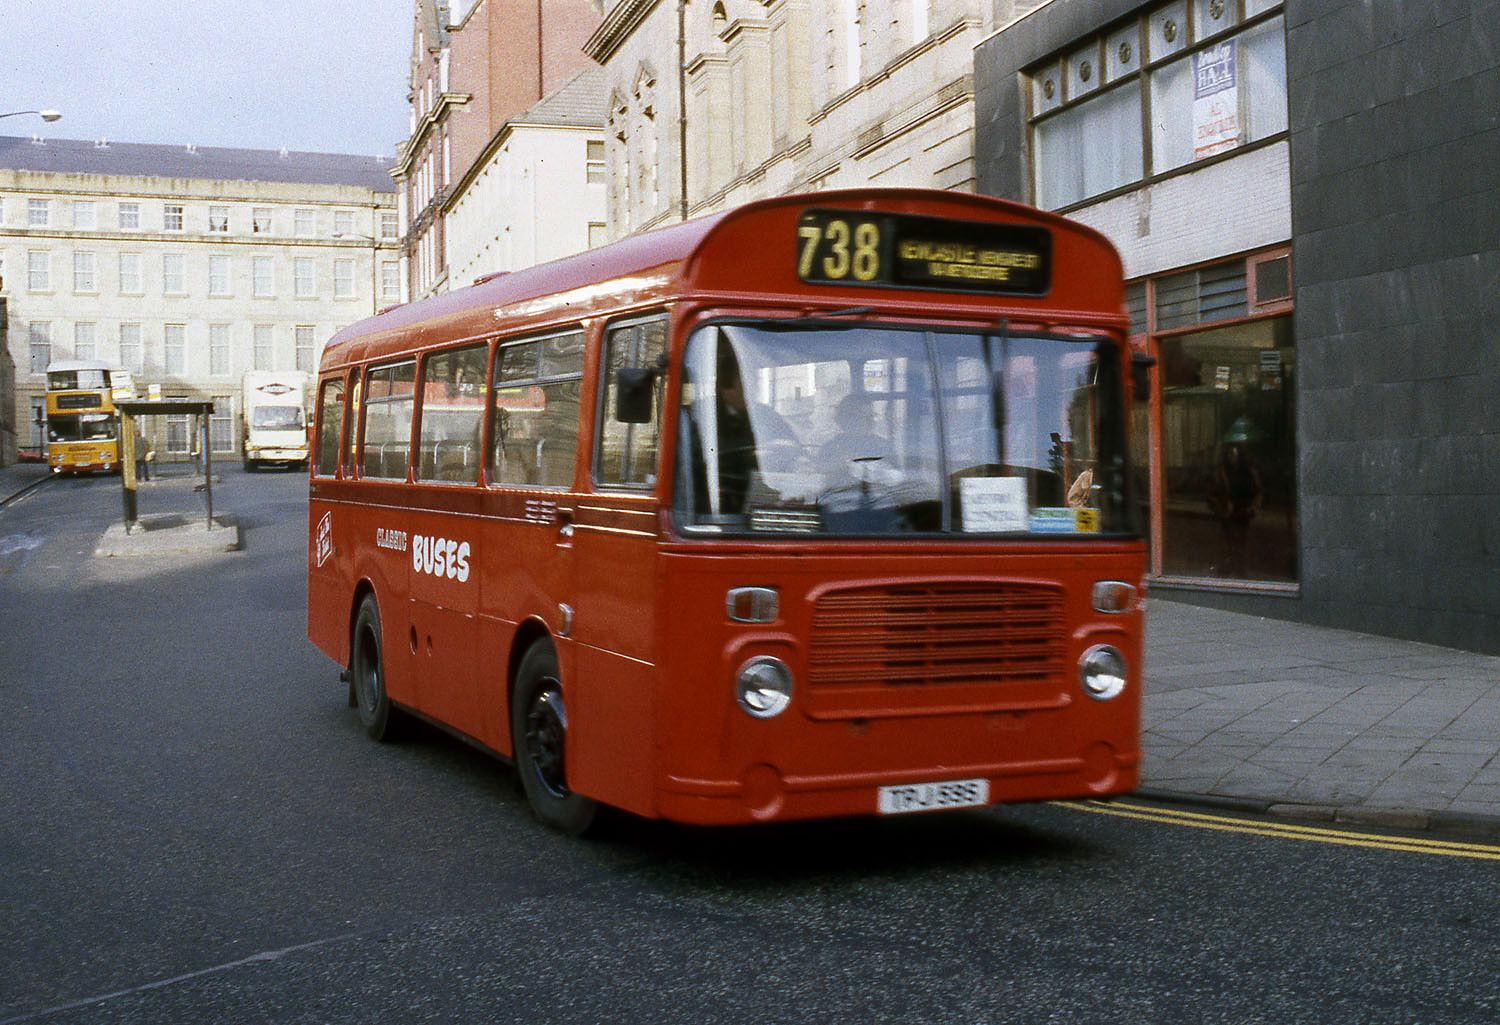 Tynexwear Classic Buses Tpj59s Newcastle Early 93 Jl In 2020 Bus Newcastle Classic